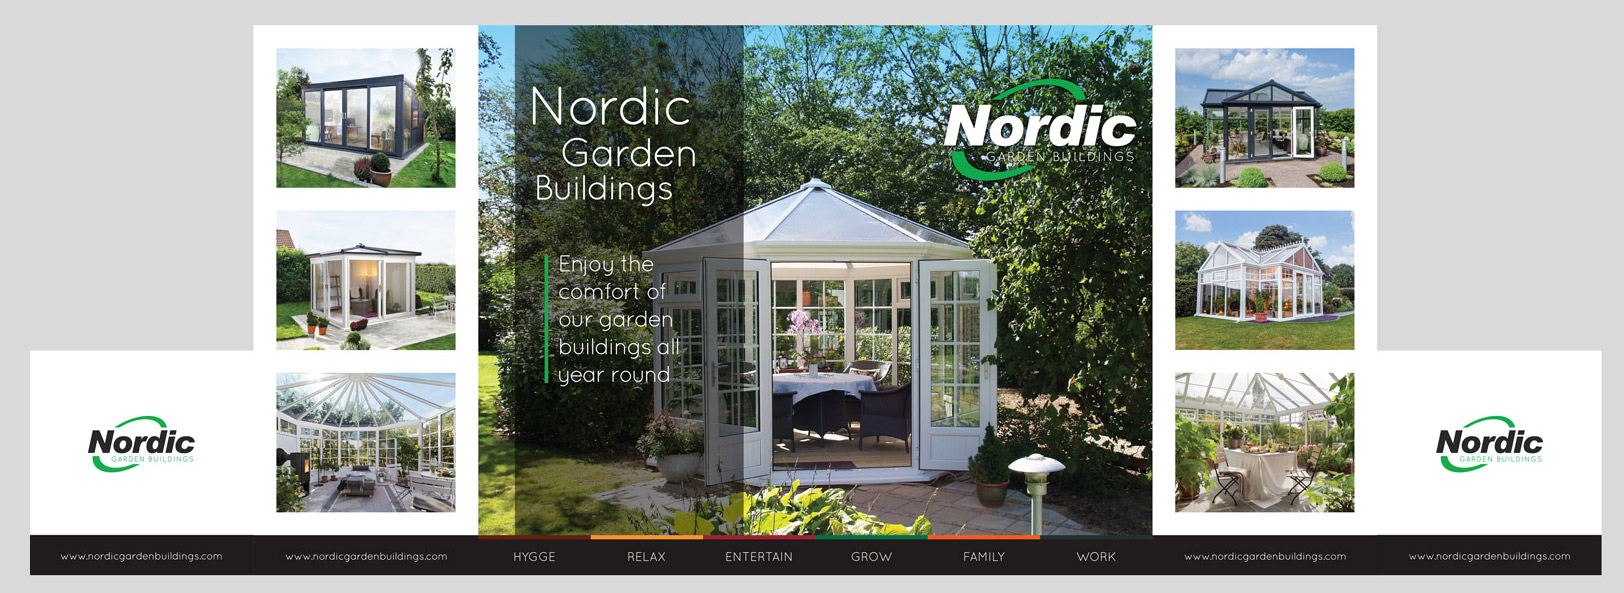 Nordic Garden Buildings / Exhibition Stand Graphics